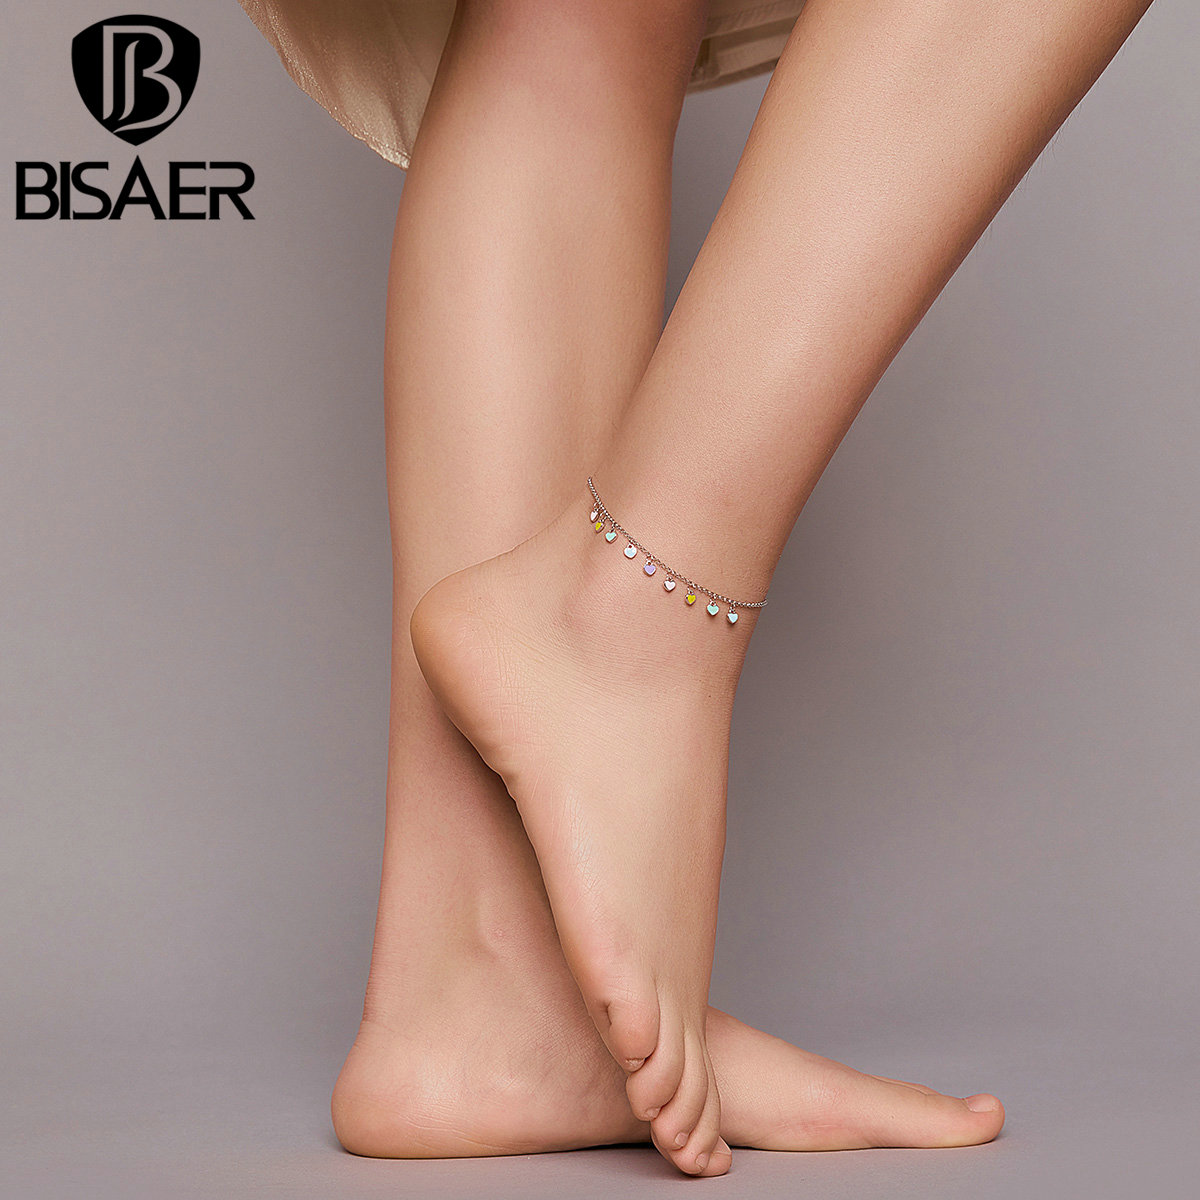 BISAER Rainbow Heart Anklets 925 Sterling Silver Colorful Chain Anklets For Women Feet Leg Chain Link 2020 New Jewelry ECT020